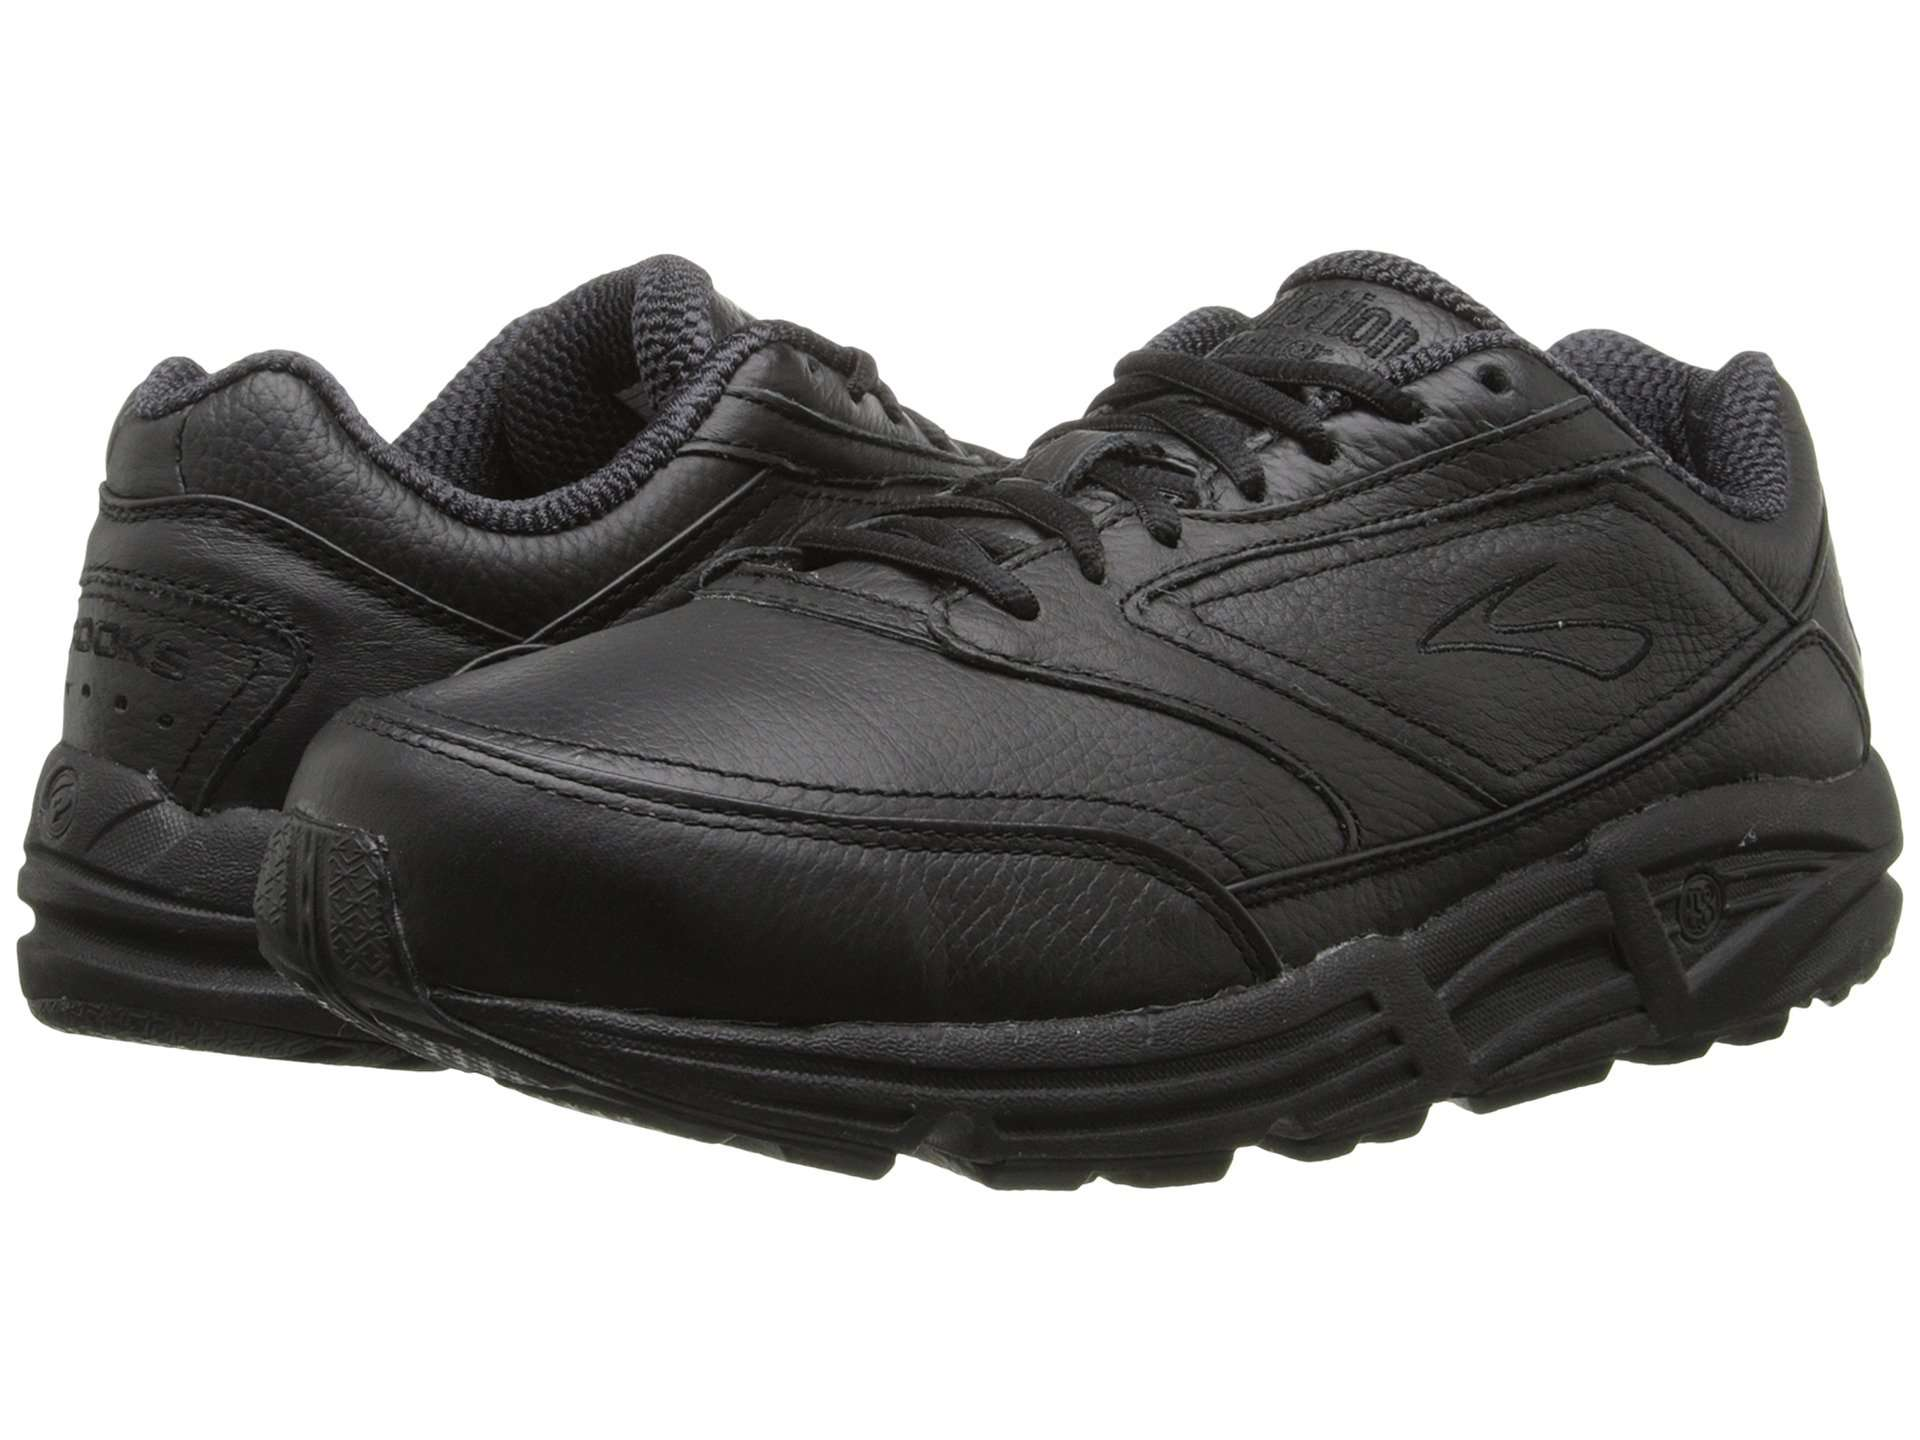 c1a887aa9b The 8 Best Walking Shoes for Plantar Fasciitis of 2019